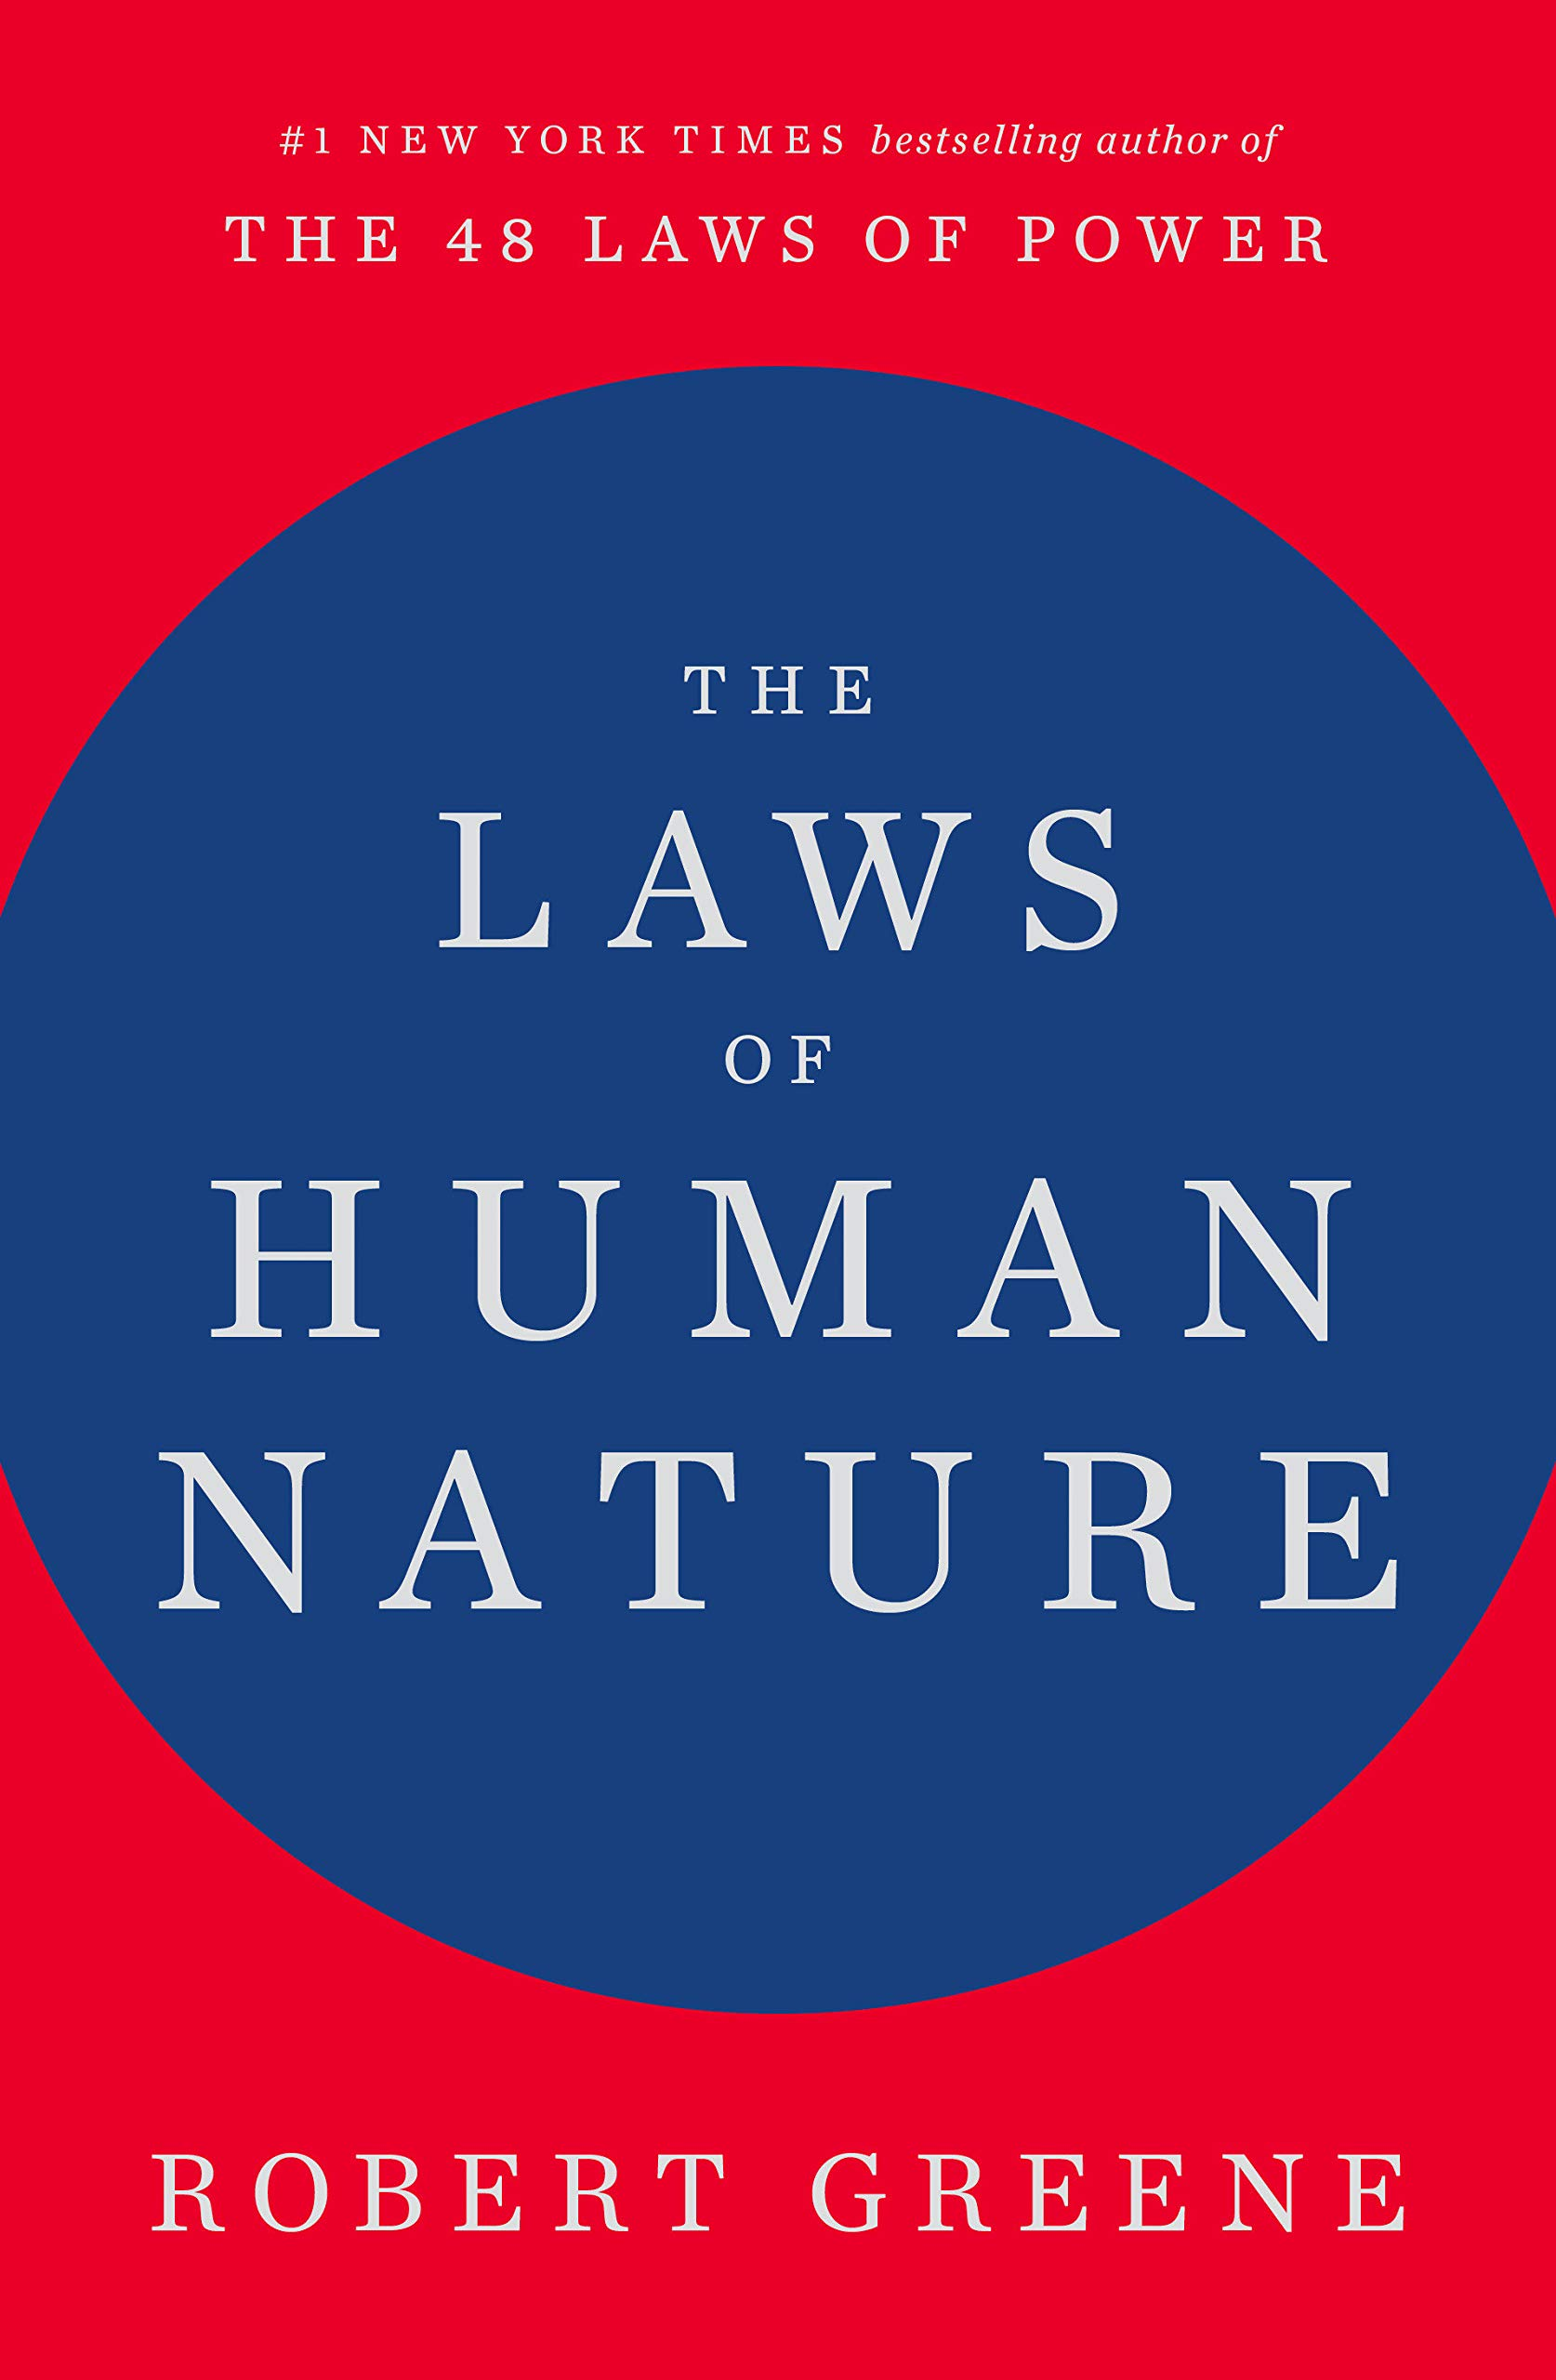 introducing: the laws of human nature (and exclusive pre-order